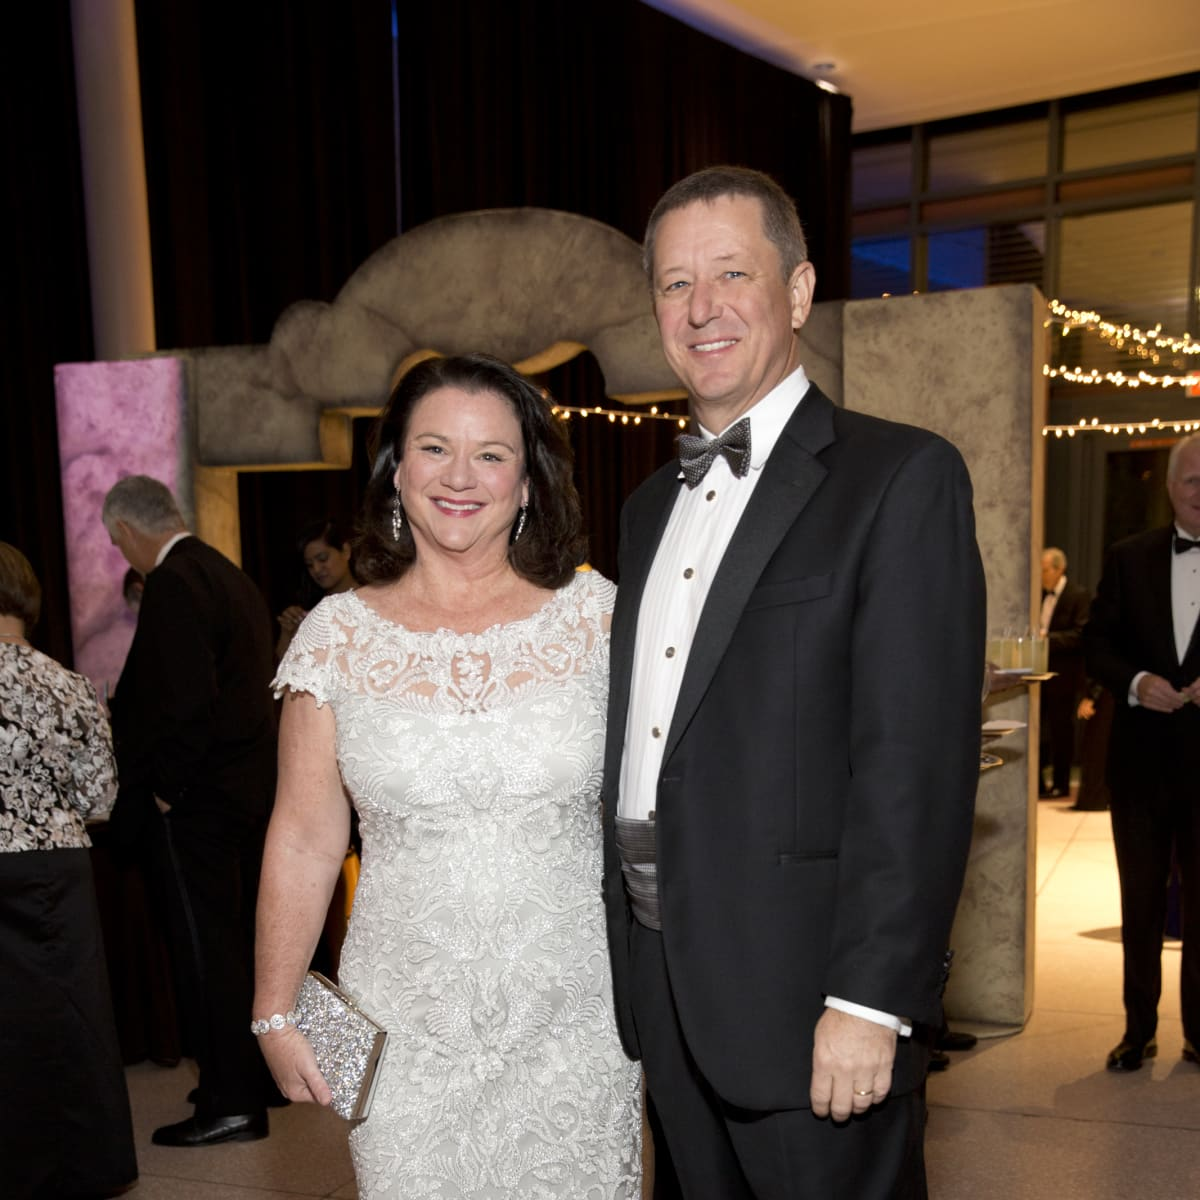 Museum of Natural Science gala, Mach 2016, Tara Wuthrich,  David Wuthrich